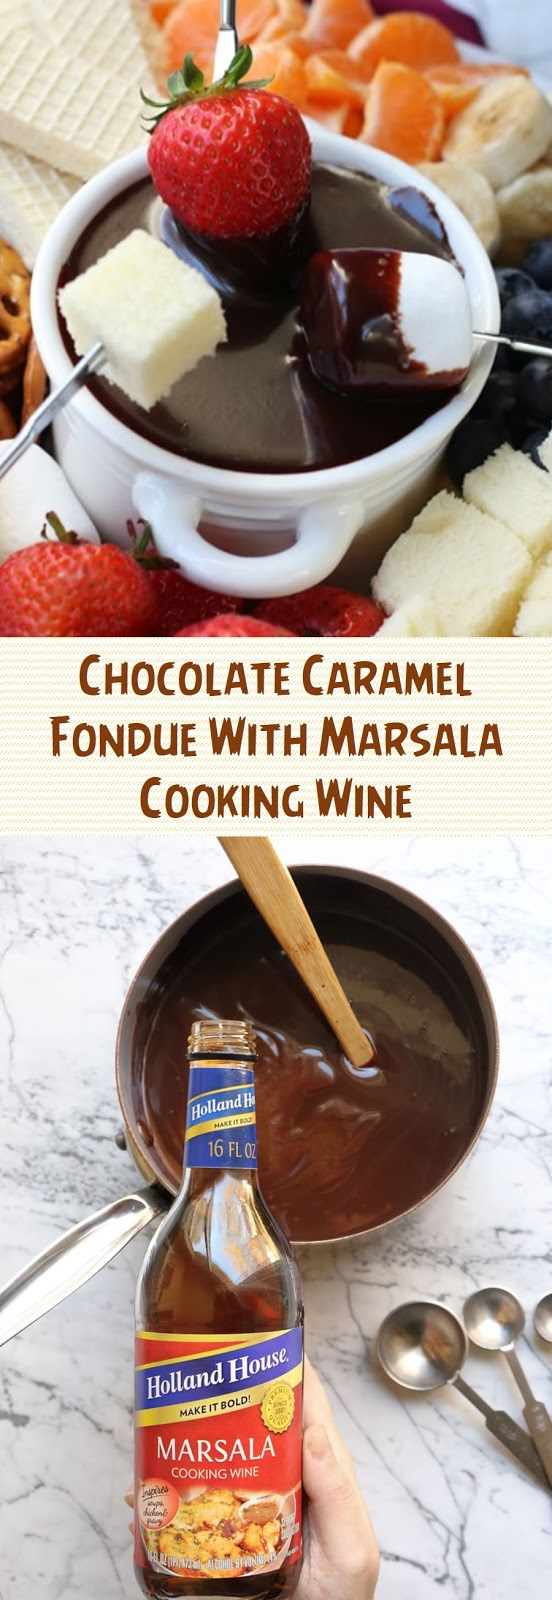 Chocolate Caramel Fondue With Marsala Cooking Wine